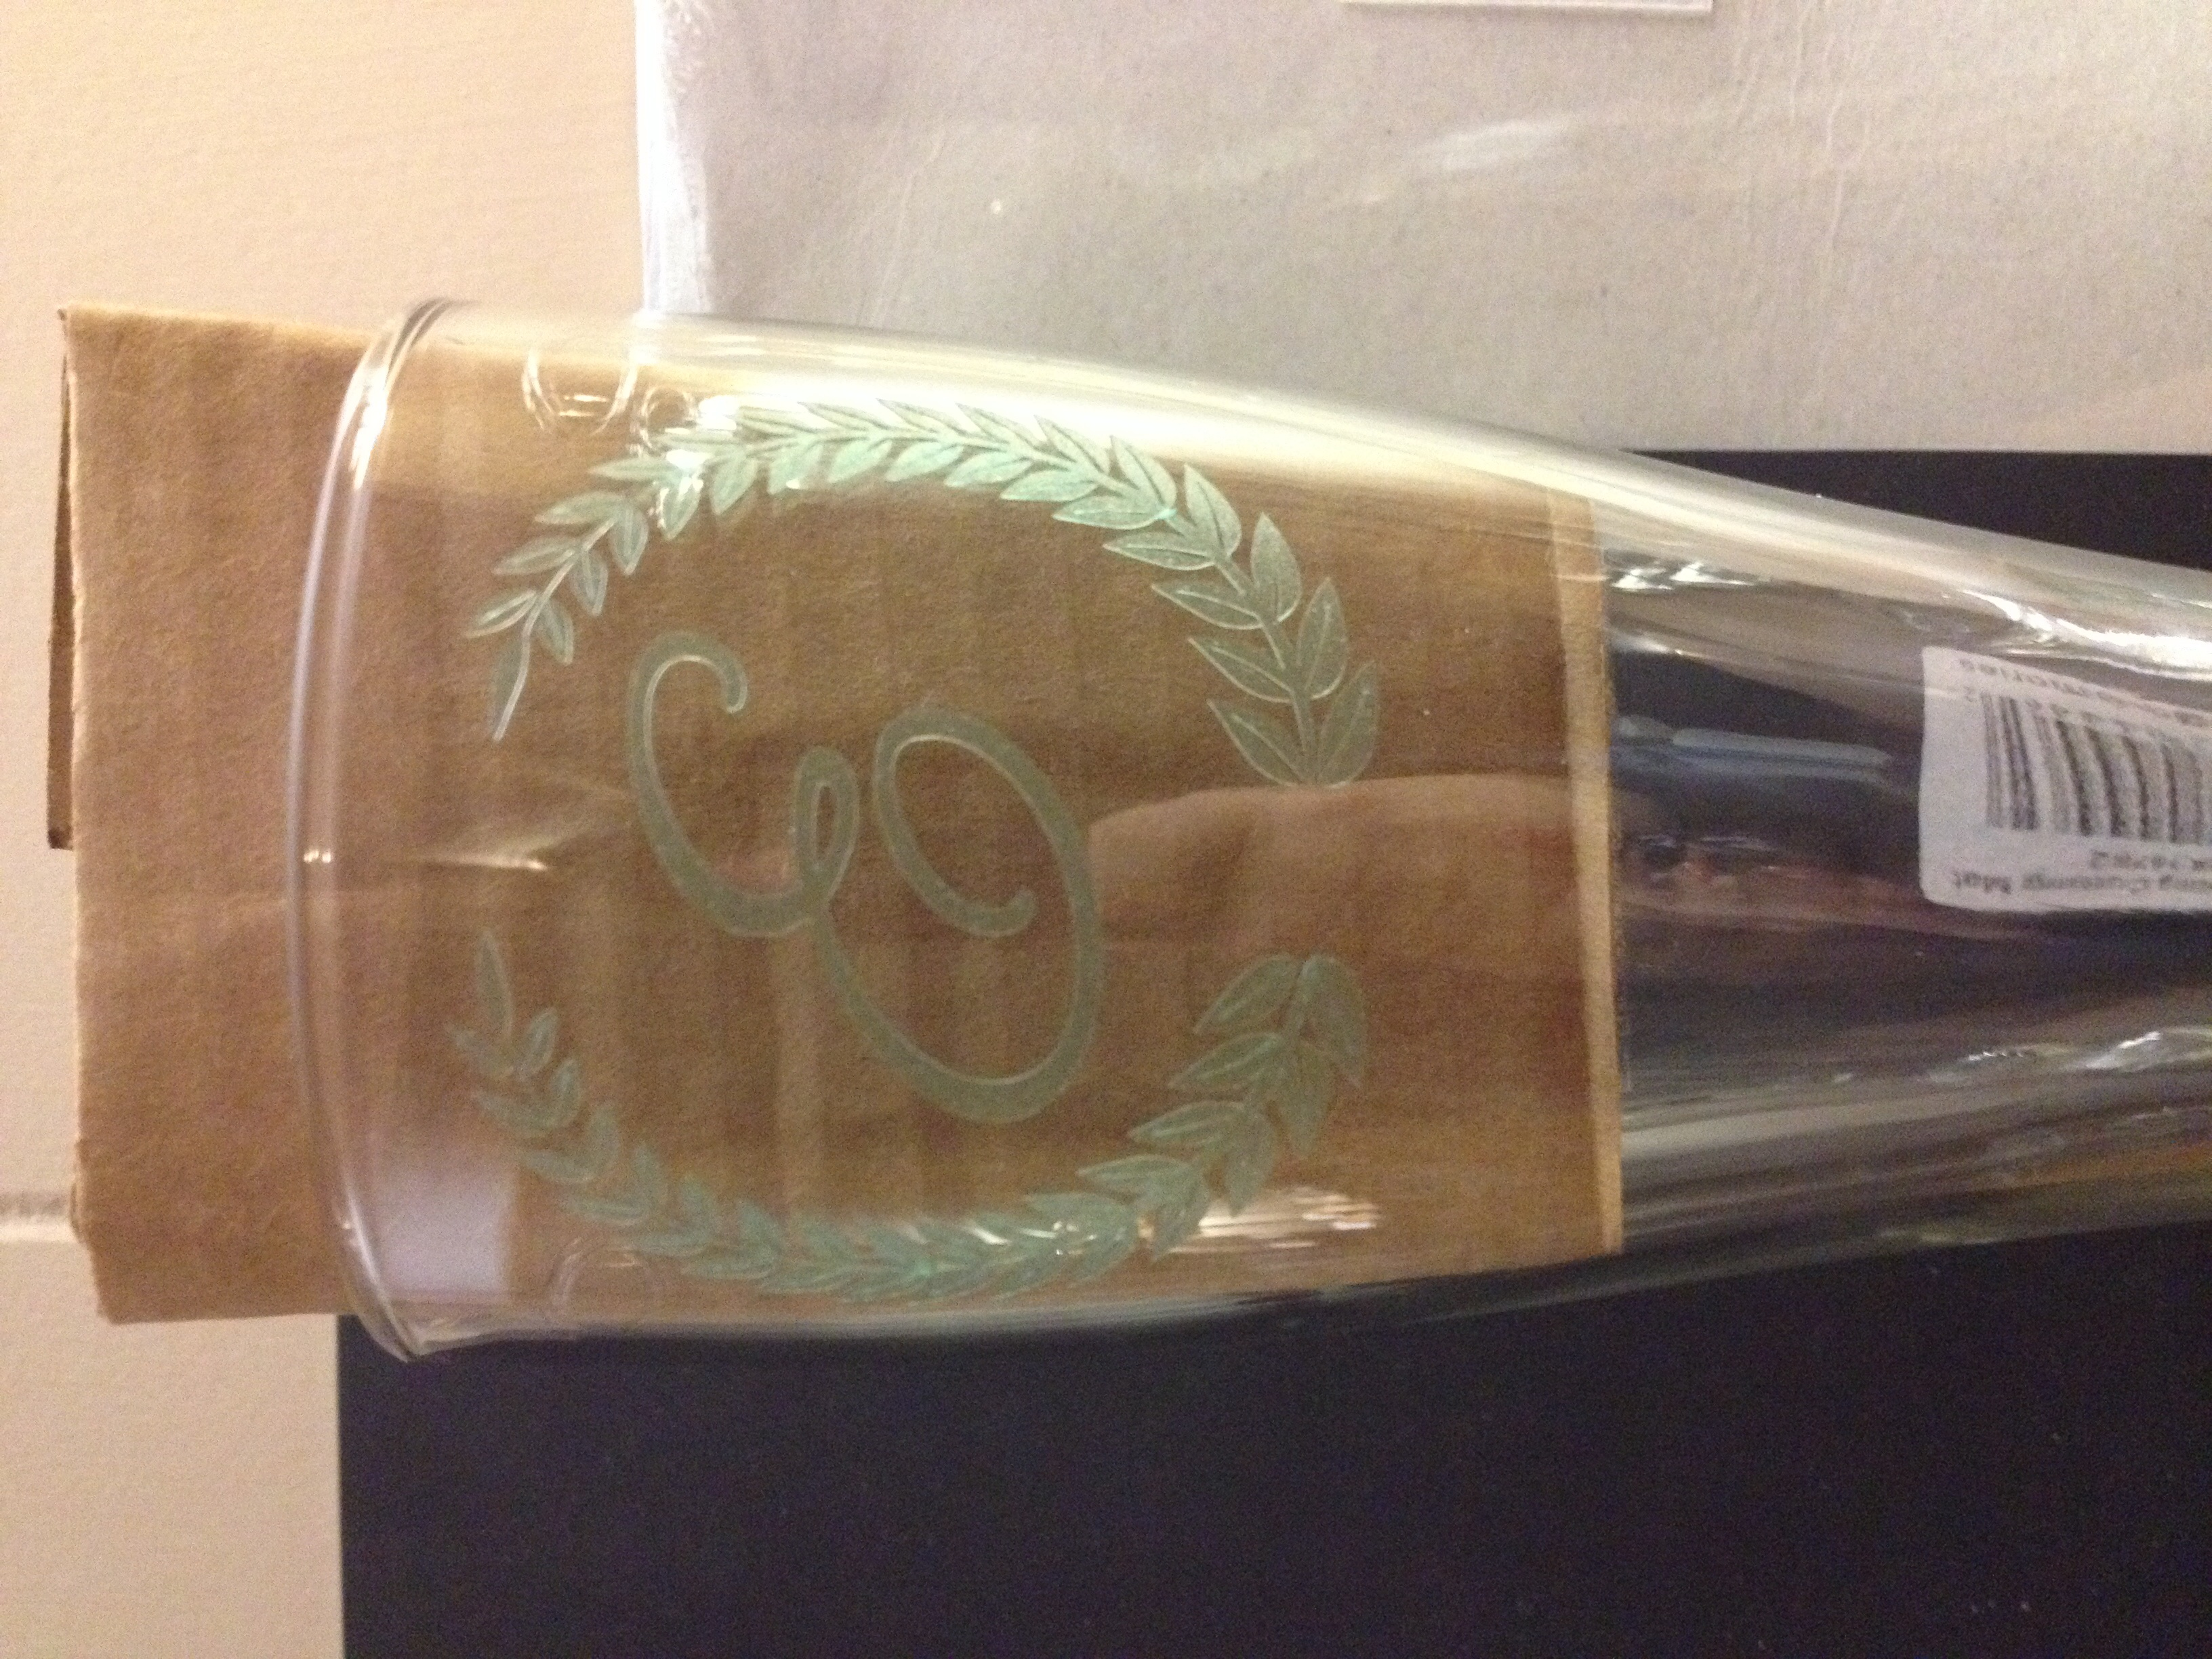 Customer photo! Finished piece with etched glass decal.